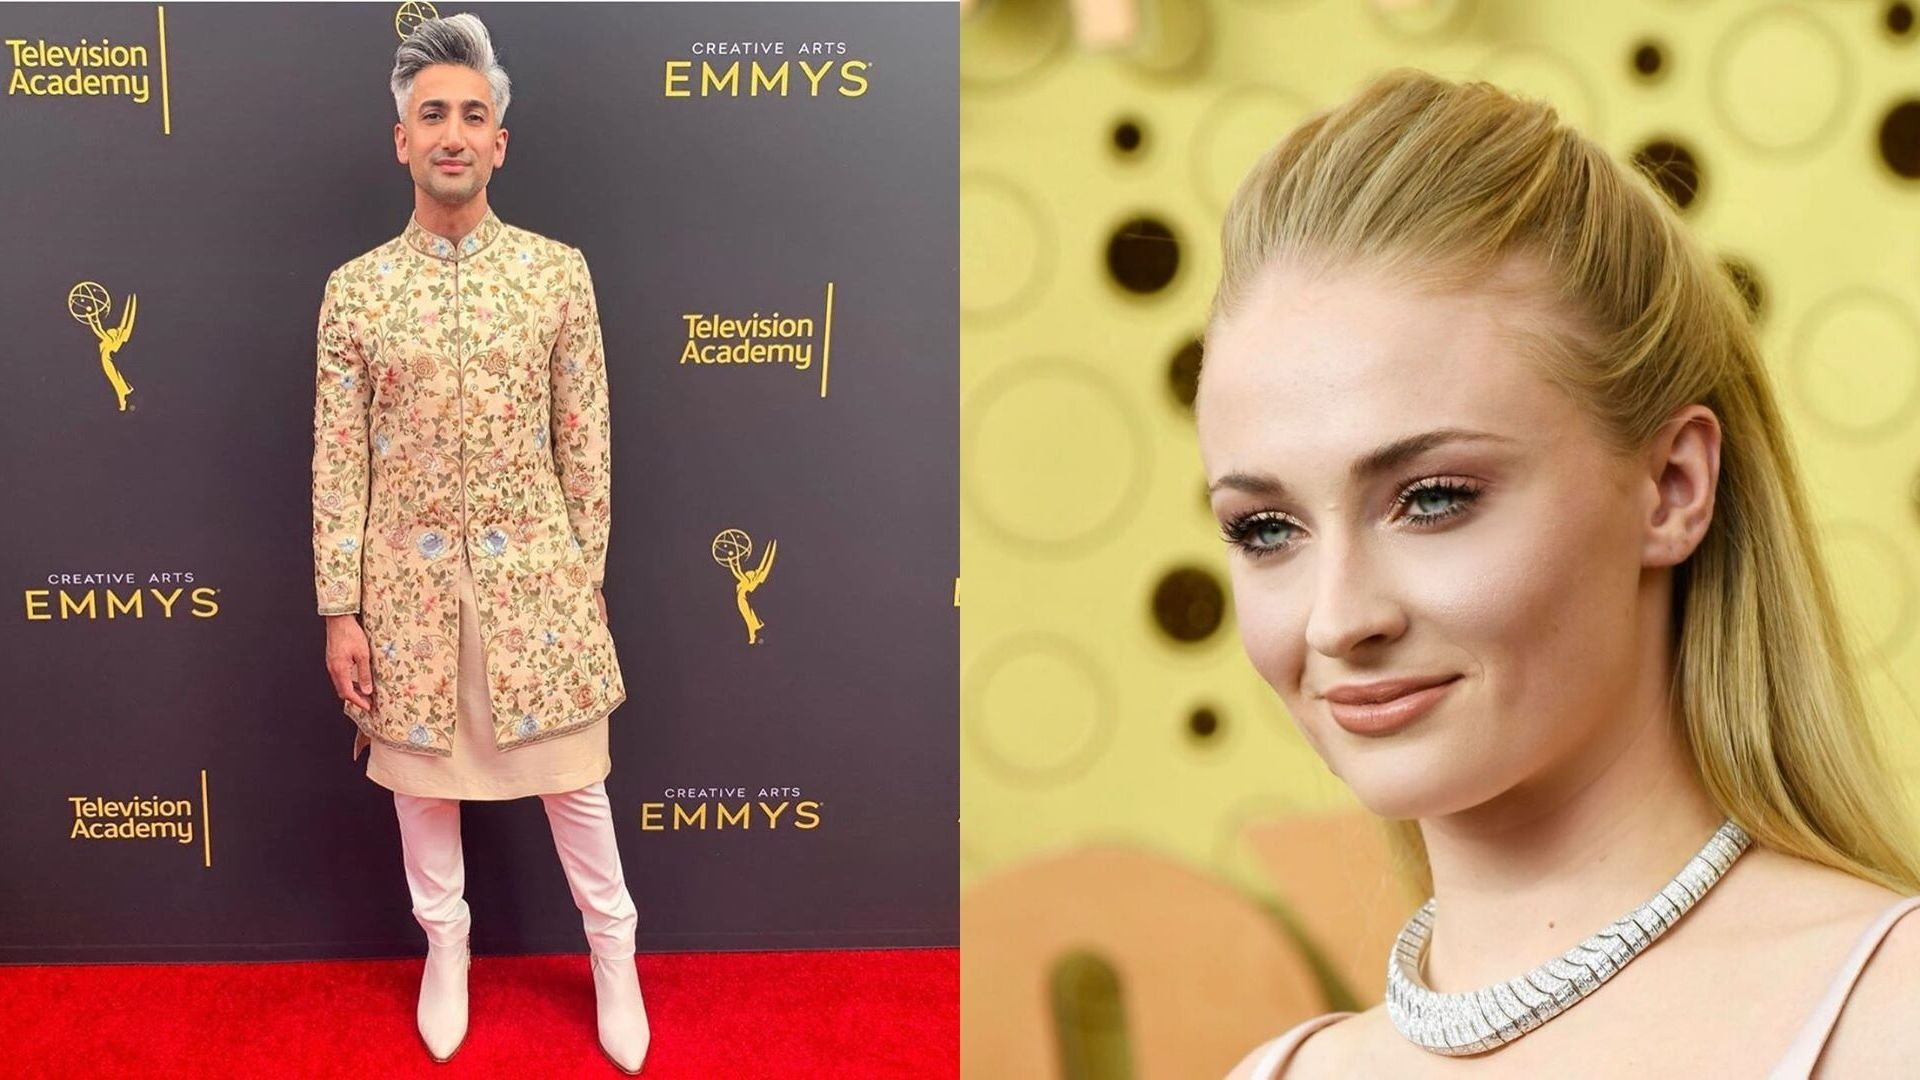 Sophie Turner Suffered A Wardrobe Malfunction Only To Be Rescued By Tan France